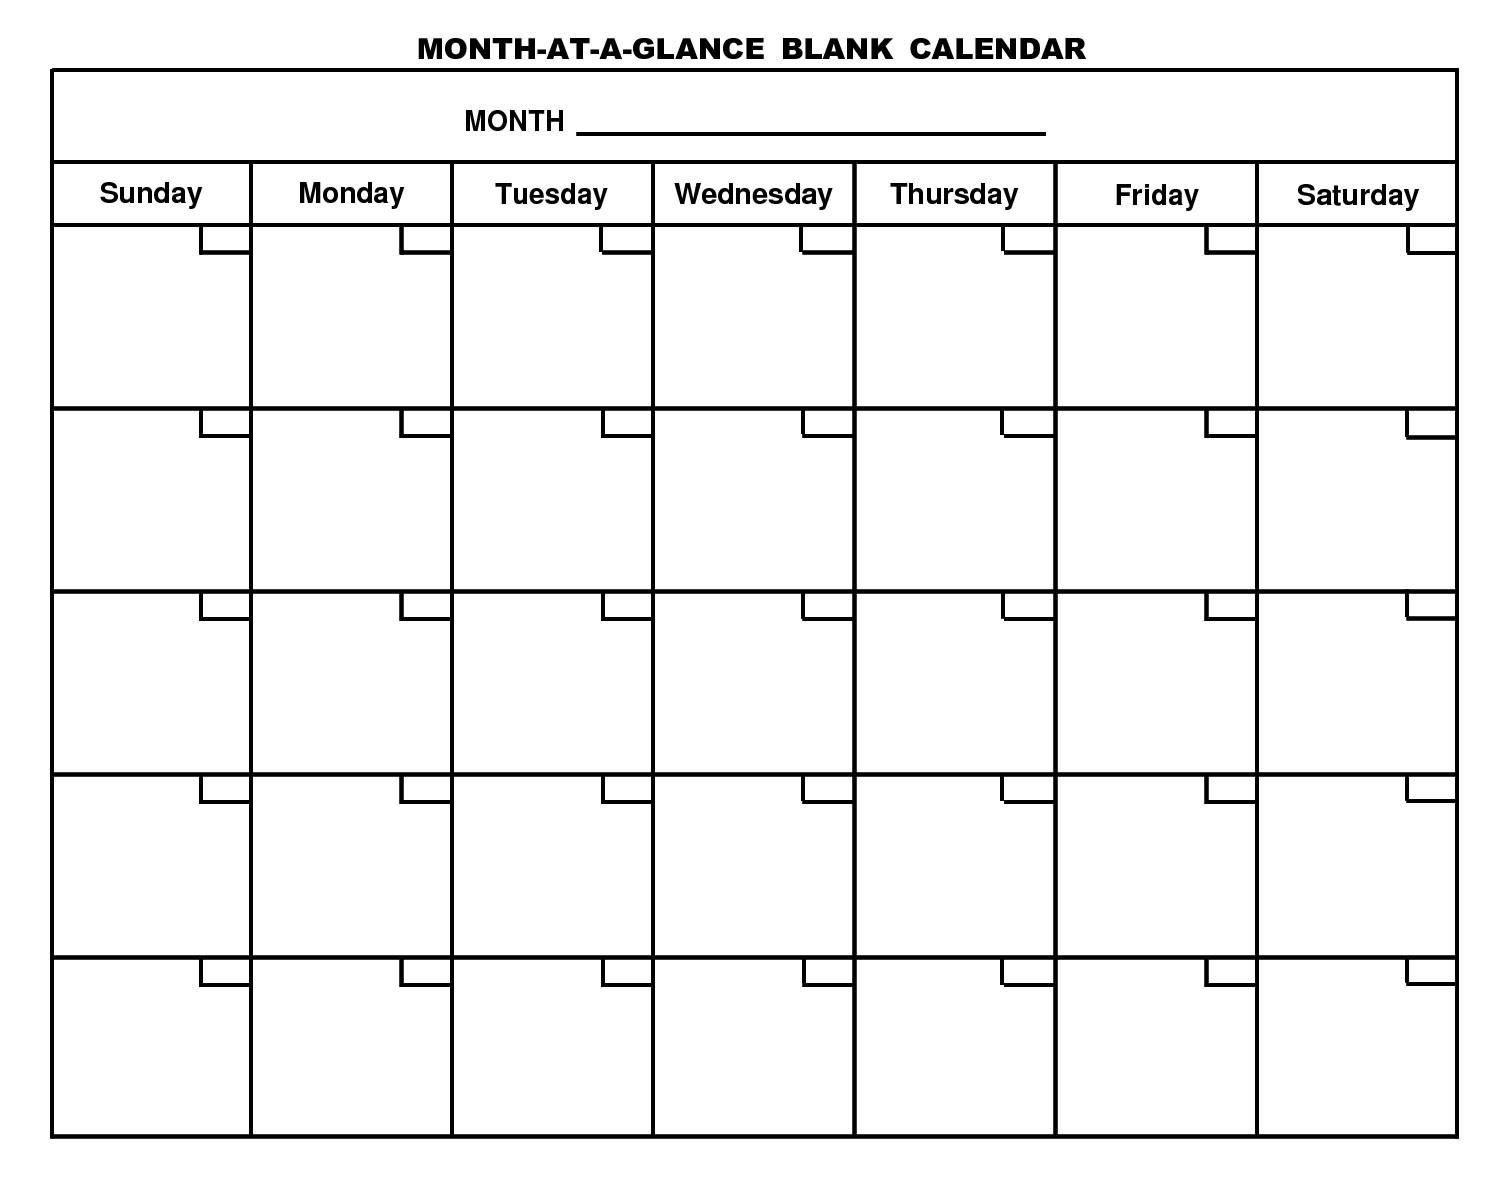 Free Printable Monthly Calendar With Large Boxes Skymaps Exceptional Free Very Large Squares Blank Printable Calendar 2020 Monthly